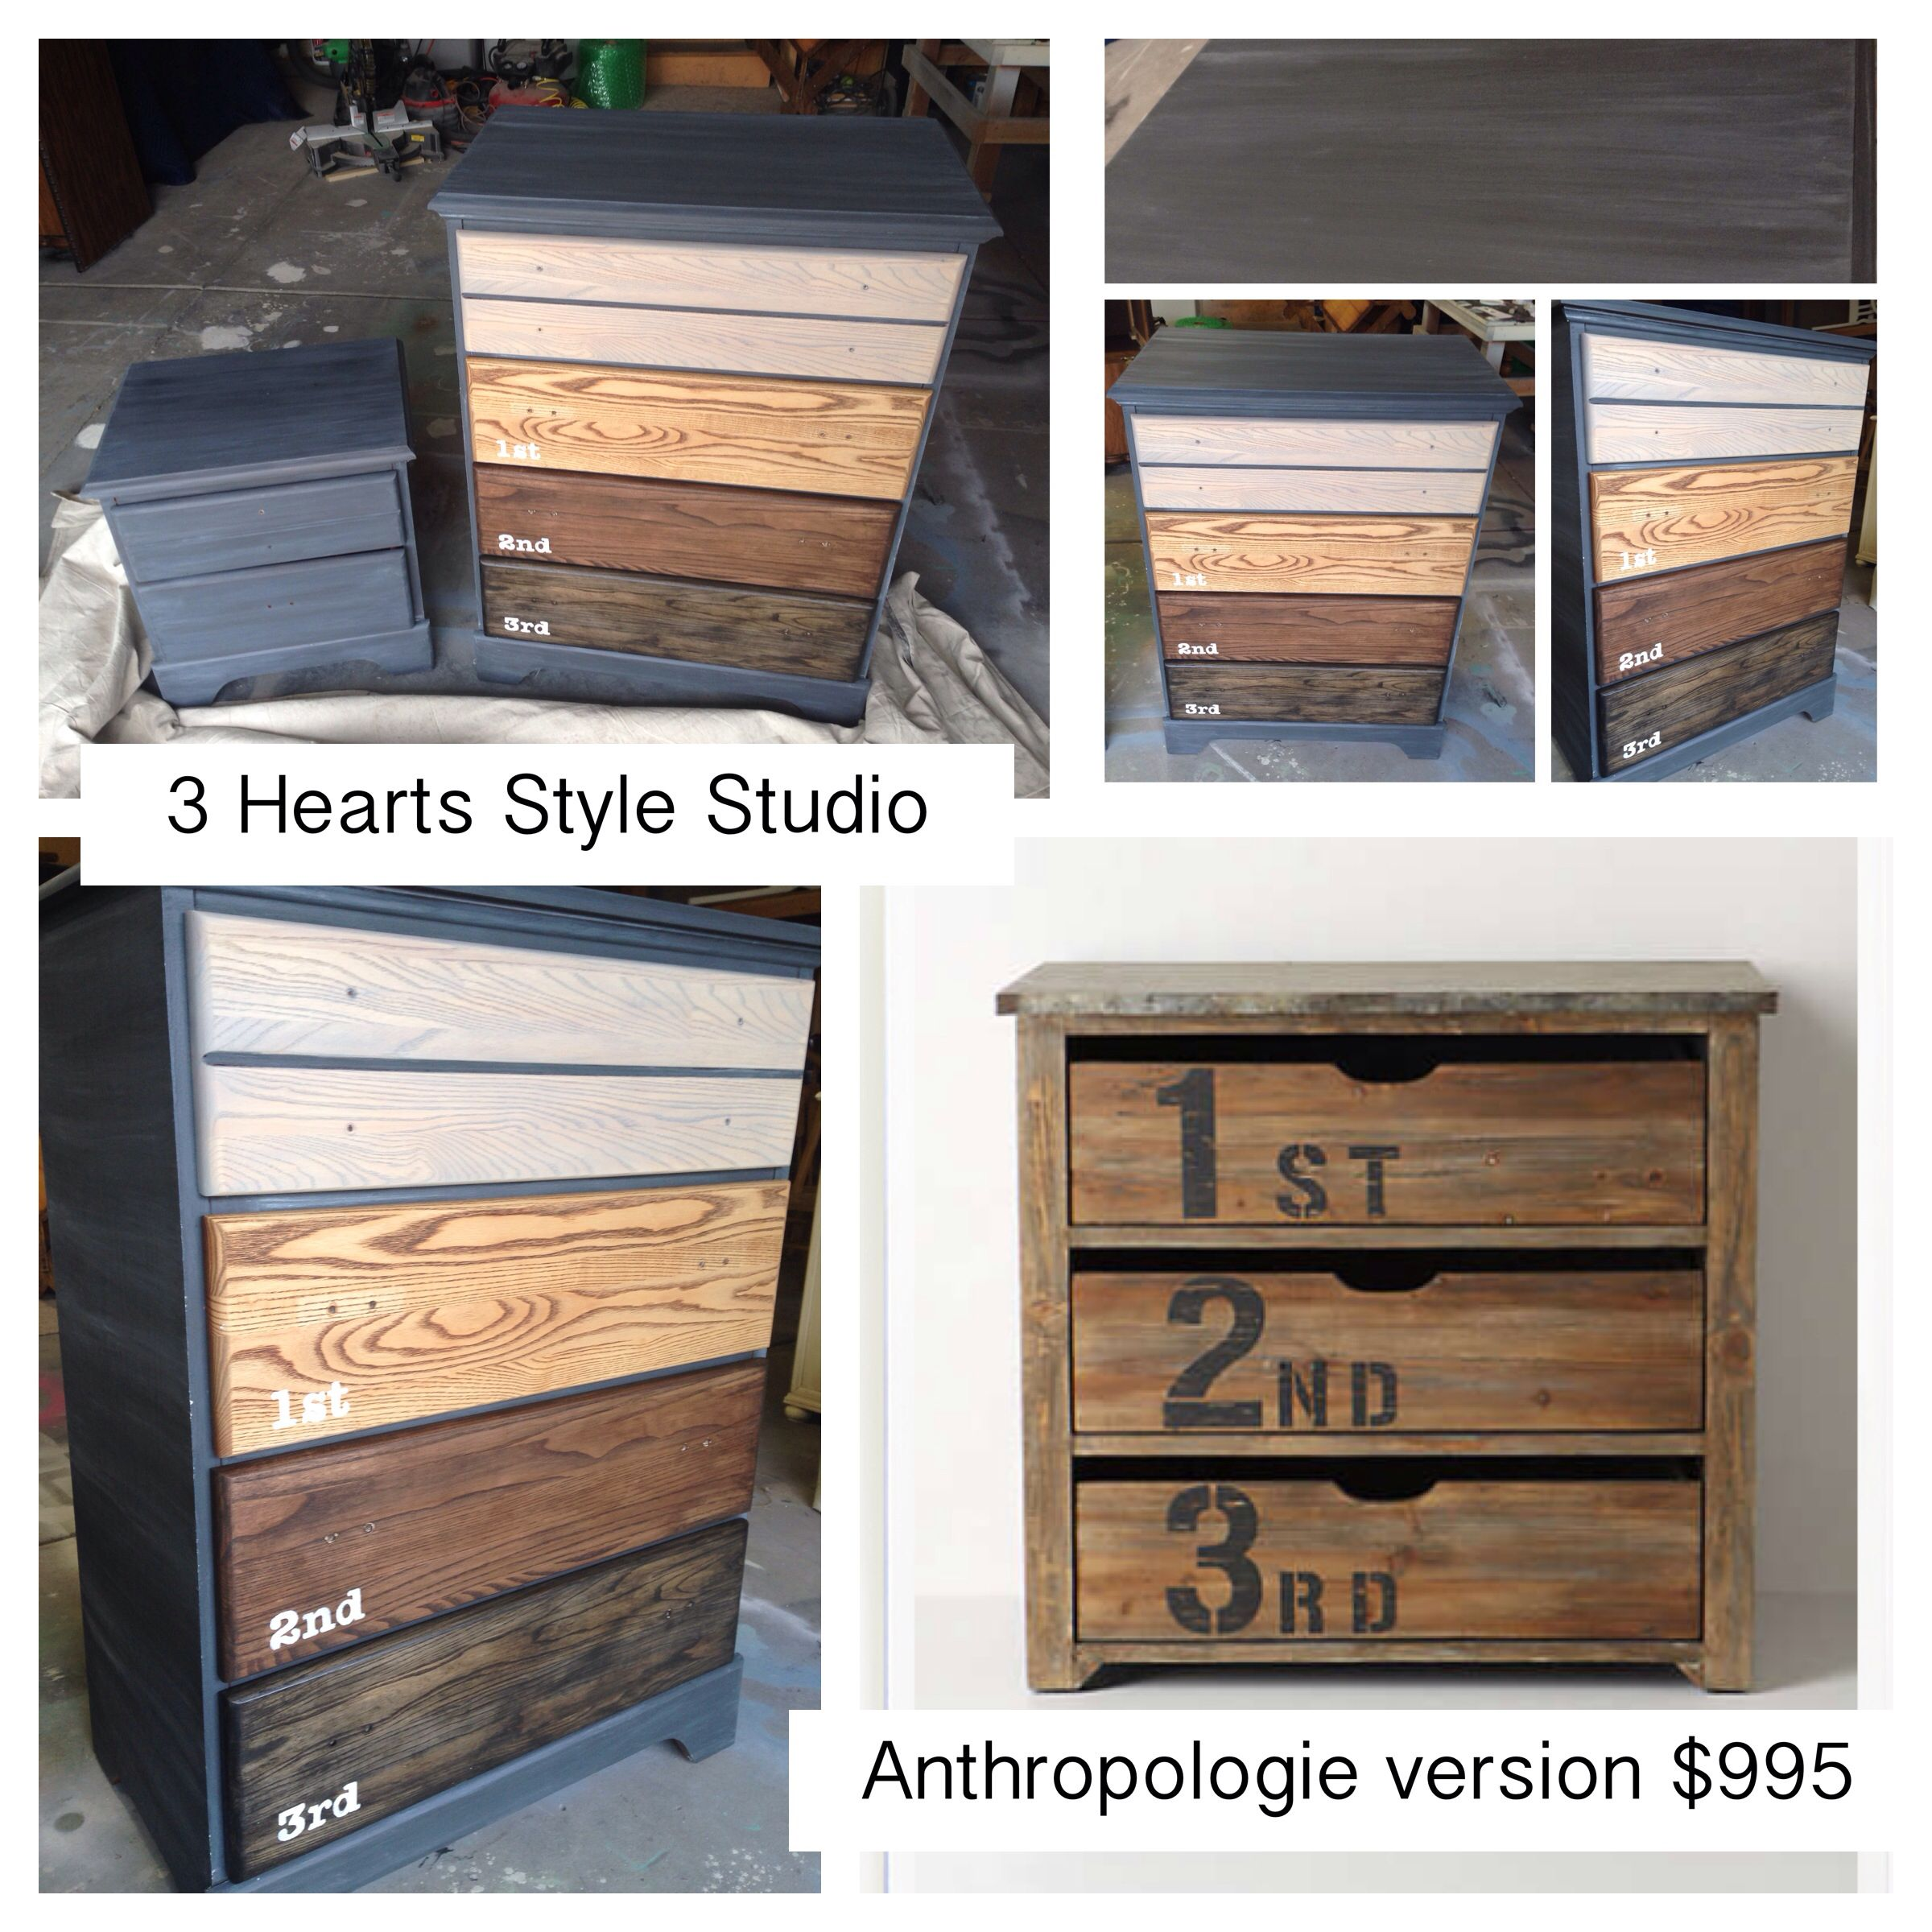 diy furniture refinishing projects. Ombré Stained Drawers With Restoration Hardware Inspired Graphite White Wash Exterior. New Handles Will Be Metal Airplanes. Diy Furniture Refinishing Projects I